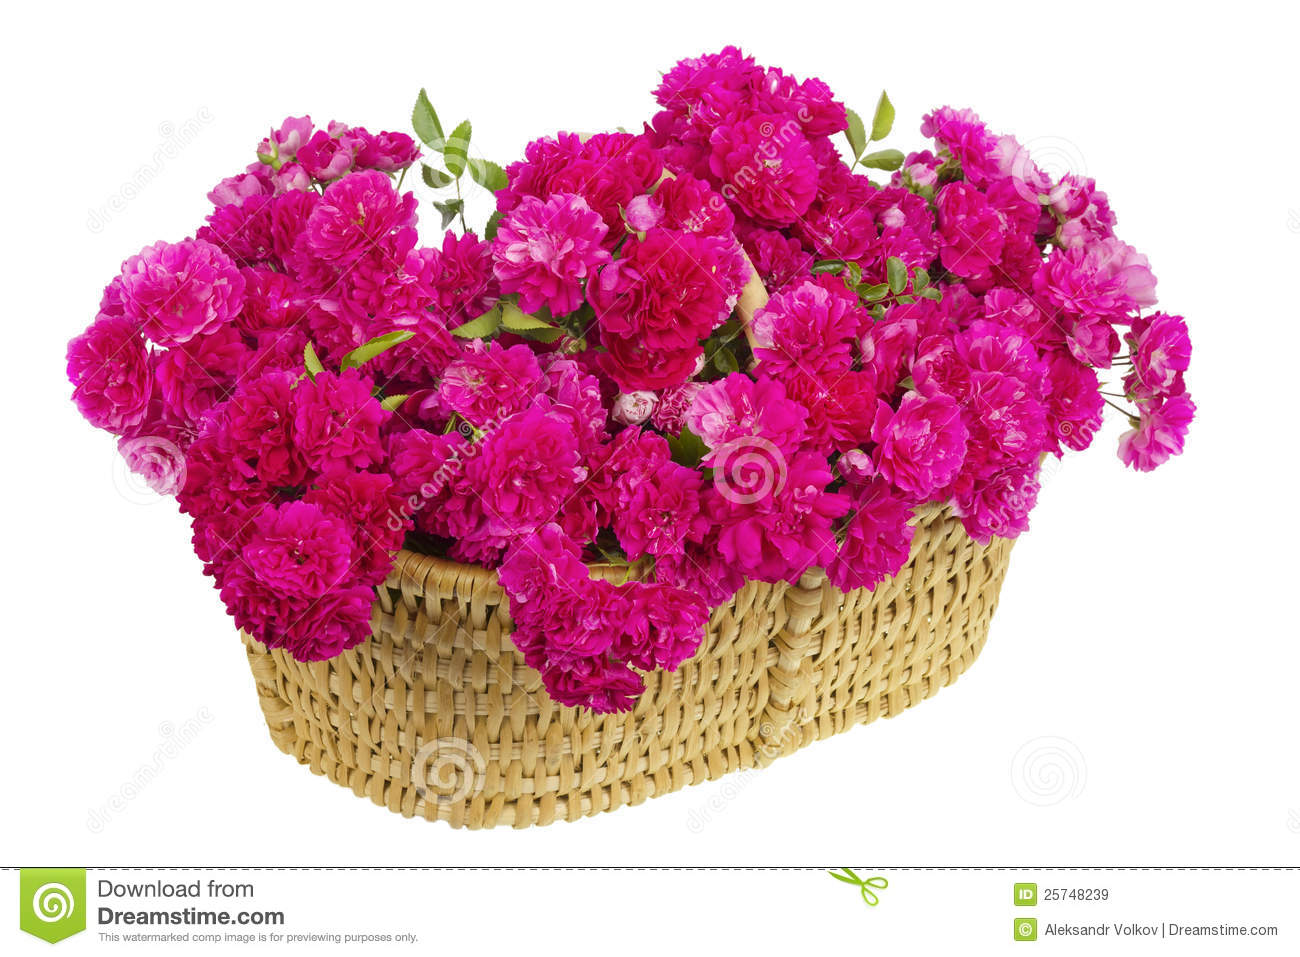 Huge bouquet flowers stock photos images pictures 685 images big basket with huge bouquet of pink roses royalty free stock images dhlflorist Gallery